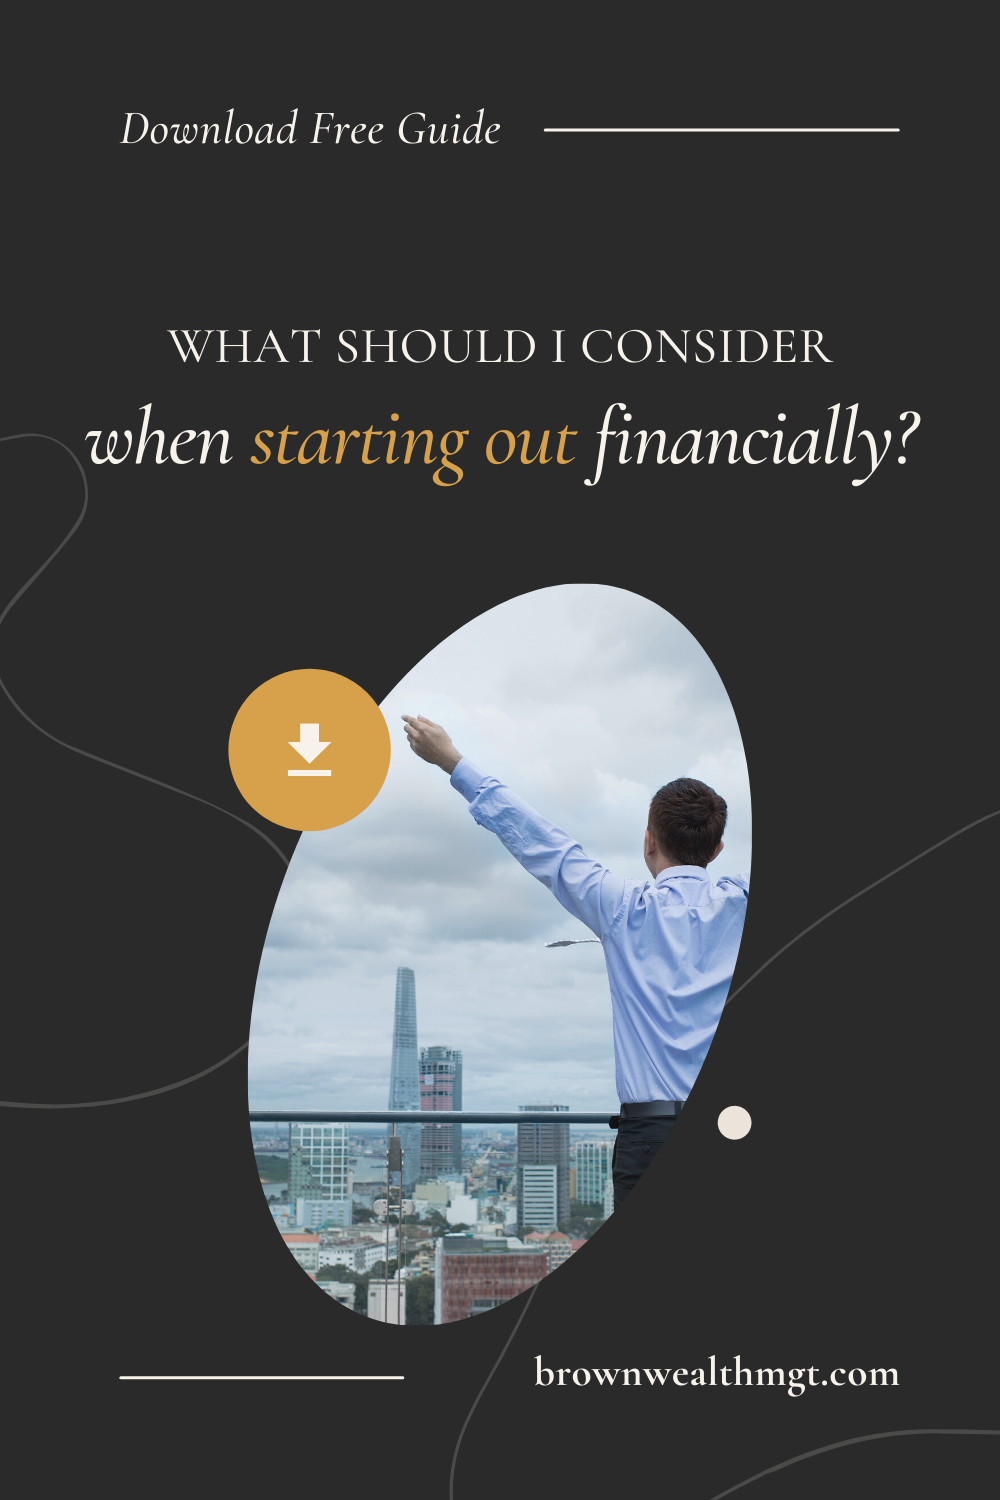 What should I consider when starting out financially?